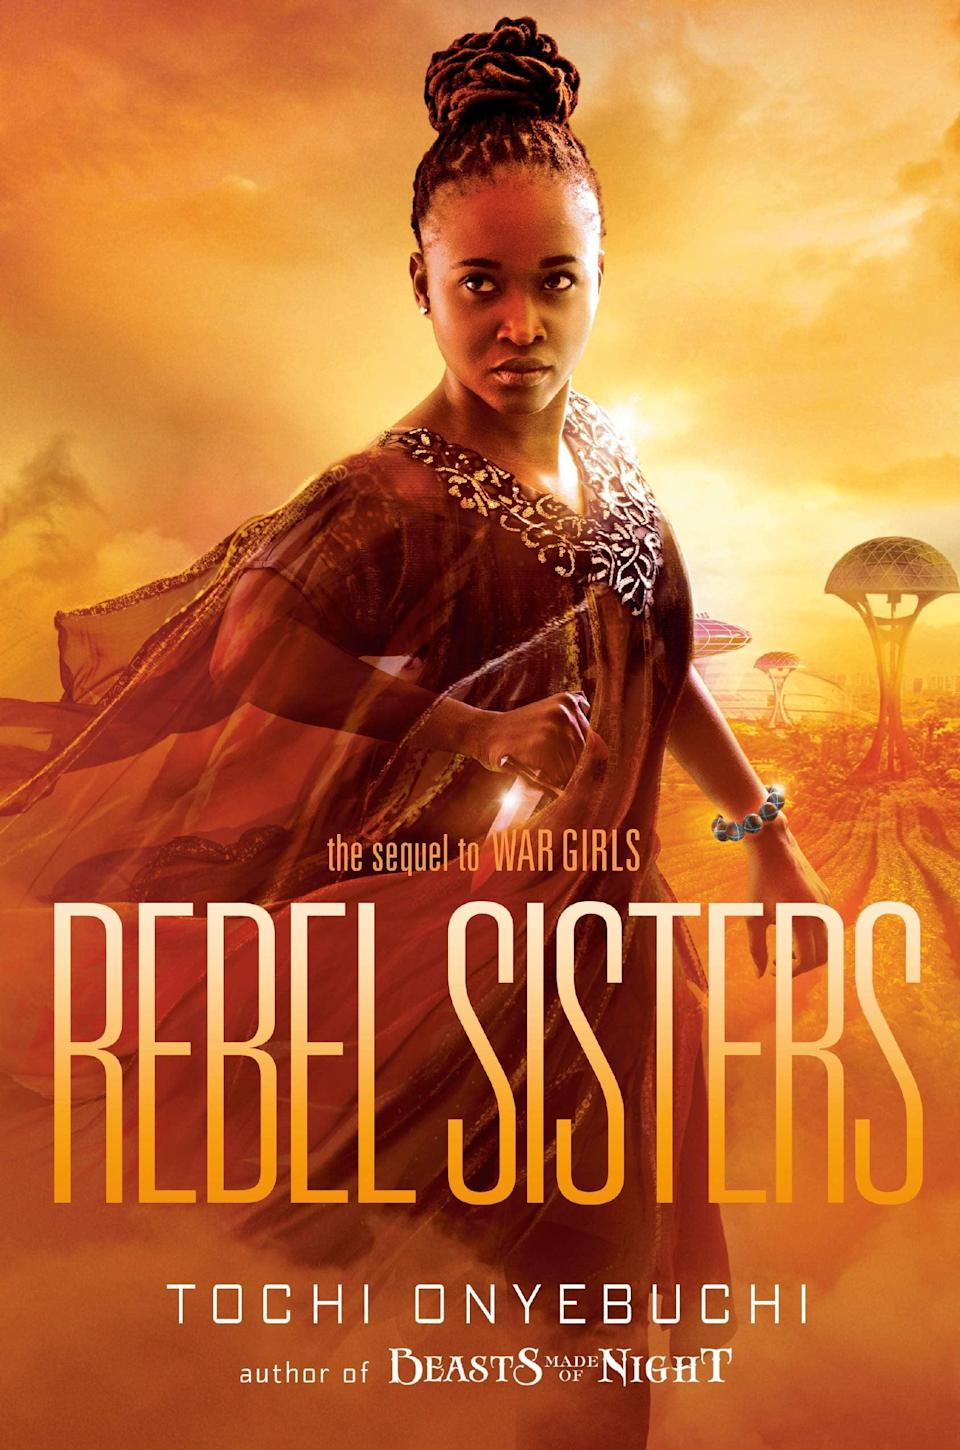 <p><span><b>Rebel Sisters</b></span> by Tochi Onyebuchi is the highly anticipated sequel to <b>War Girls</b>. Set five years after the end of the Biafran War, Ify is now a medic living in the Space Colonies, but when a mysterious illness begins affecting children, Ify is drawn back to Nigeria and all of the people she left behind. </p> <p><em>Out Nov. 17</em></p>